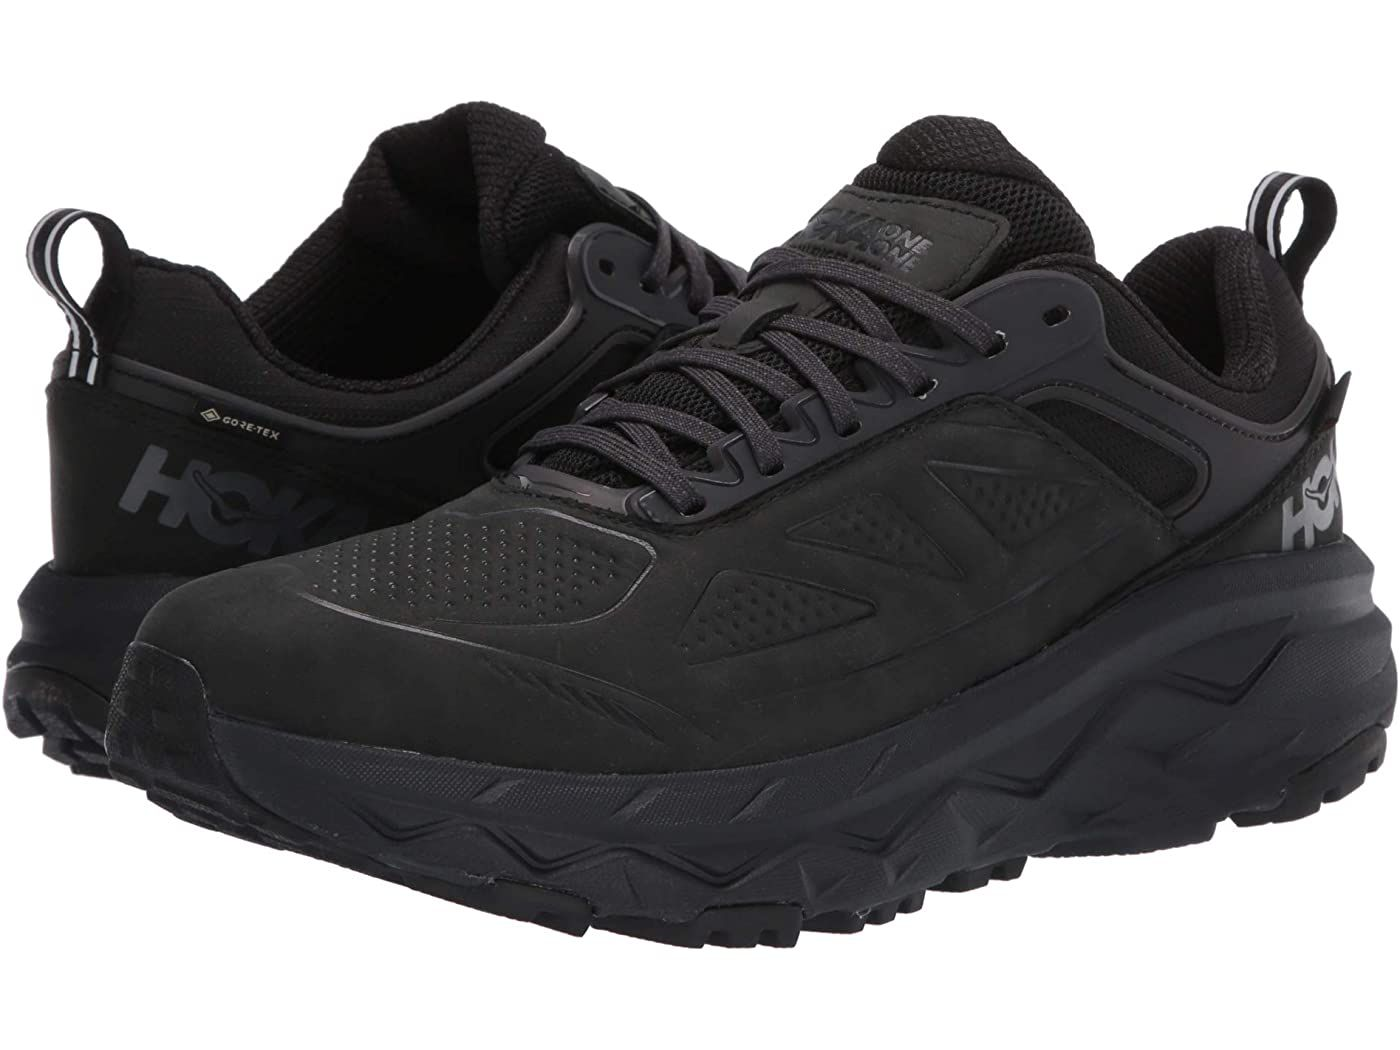 Hoka One One Challenger Low GORE-TEX®